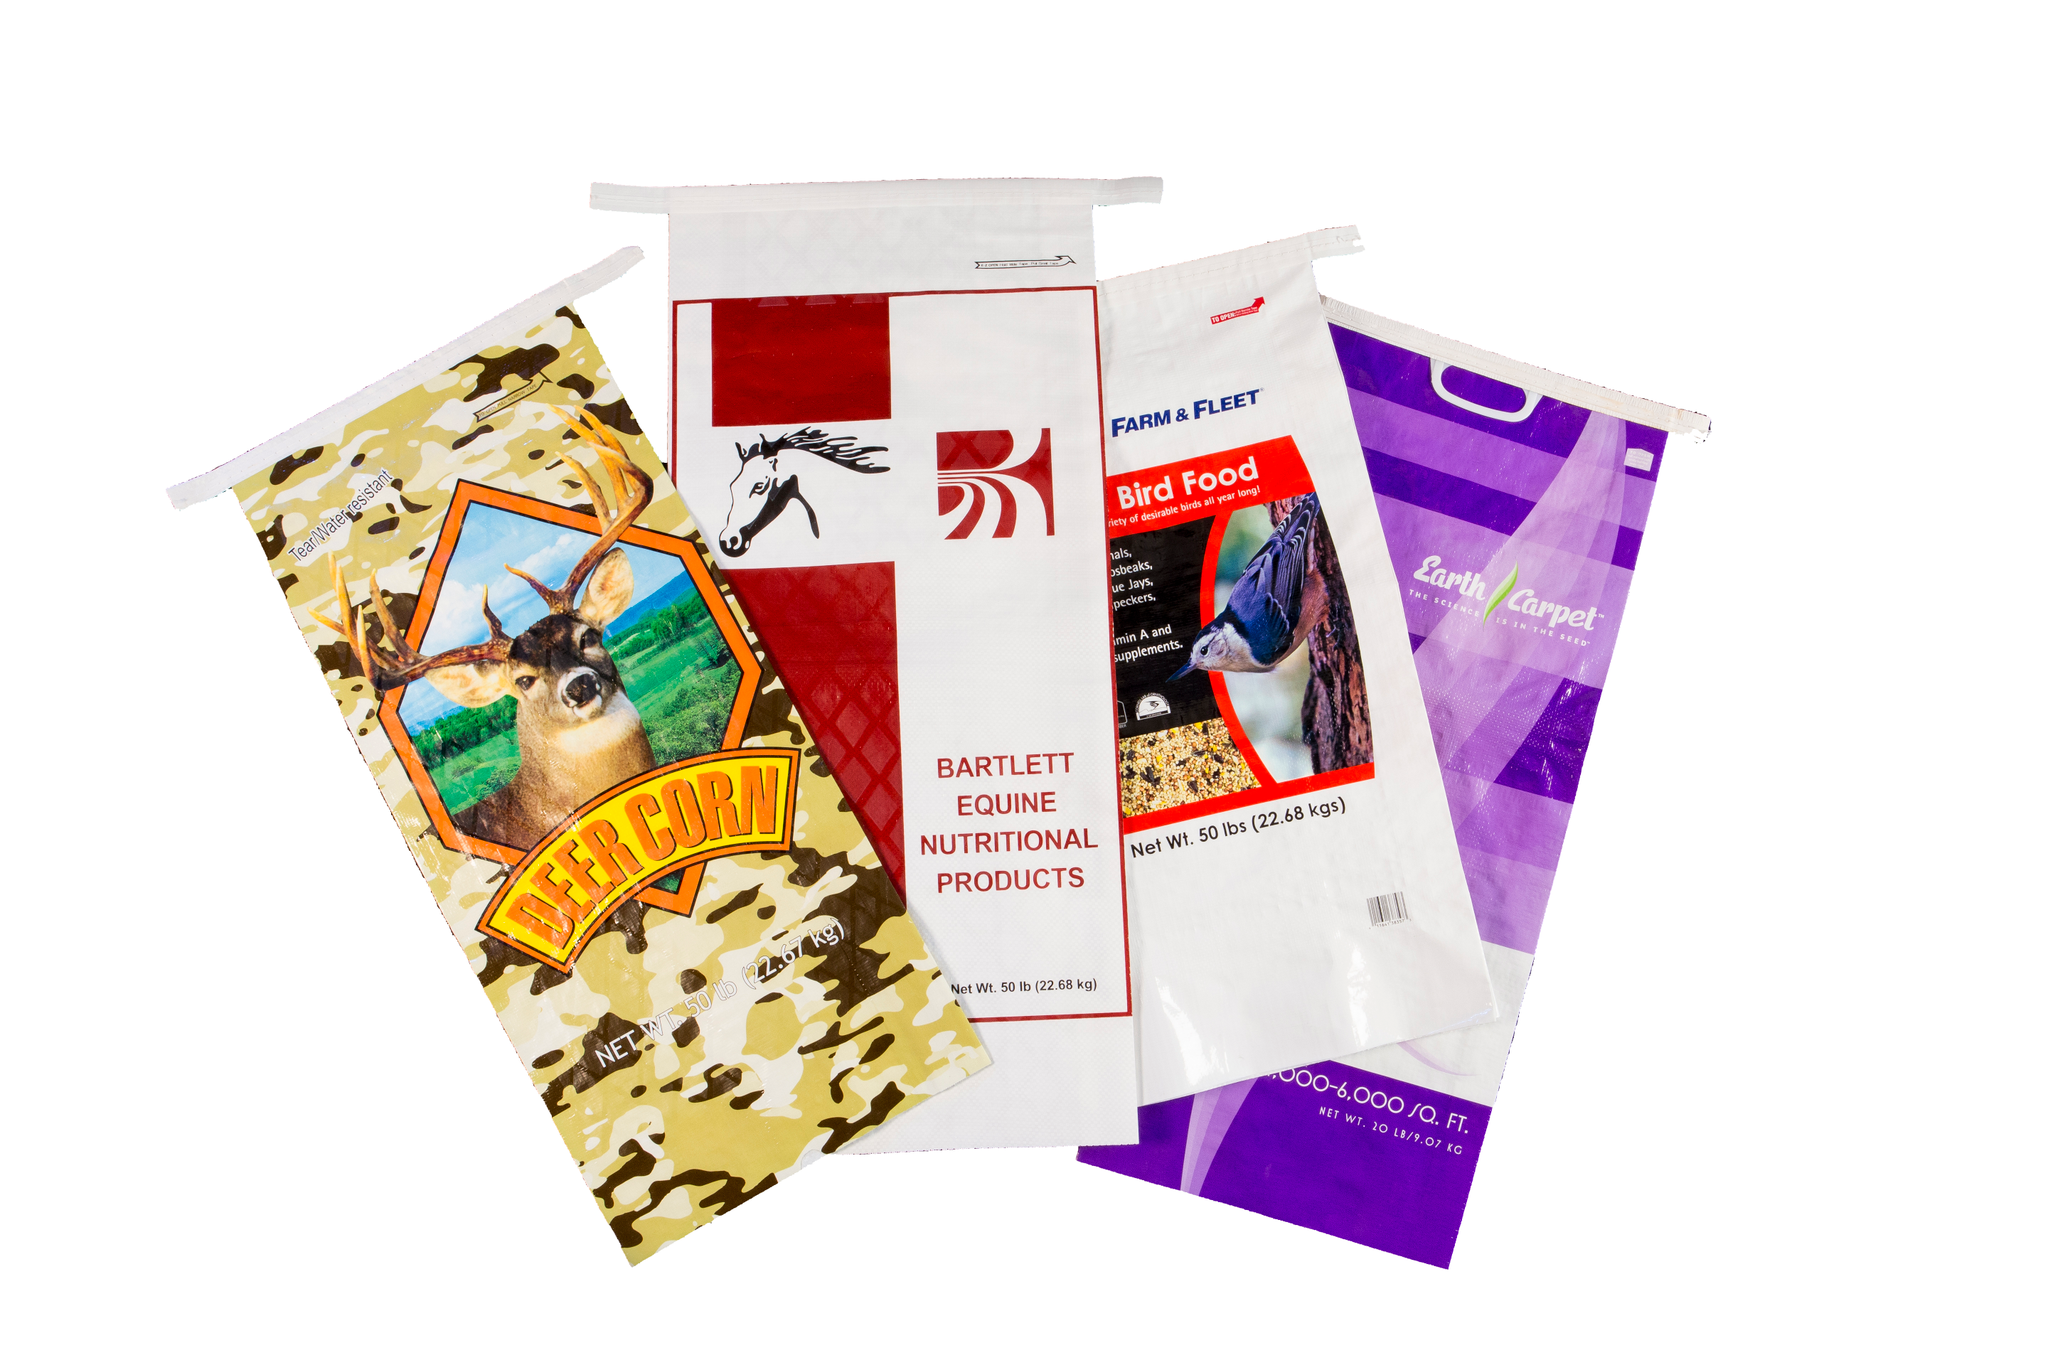 BOPP Bags | Conitex Sonoco | Flexible Packaging Products